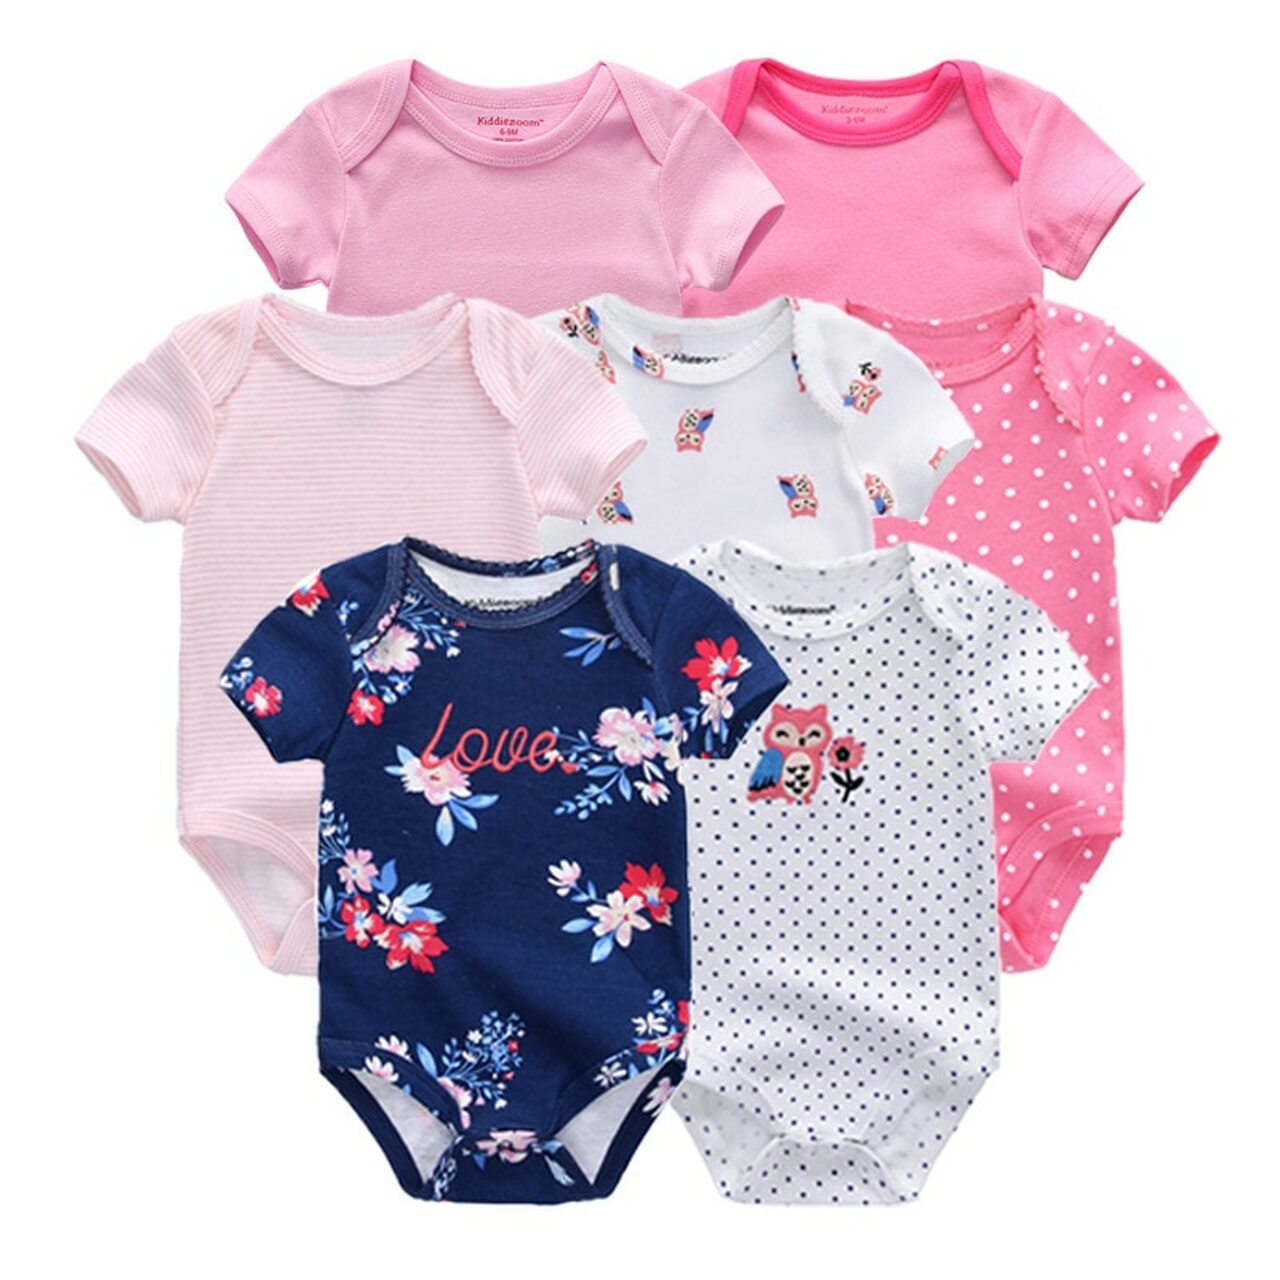 bfd58fa5d 7 PCS lot newborn baby clothes baby rompers short sleeve baby ...